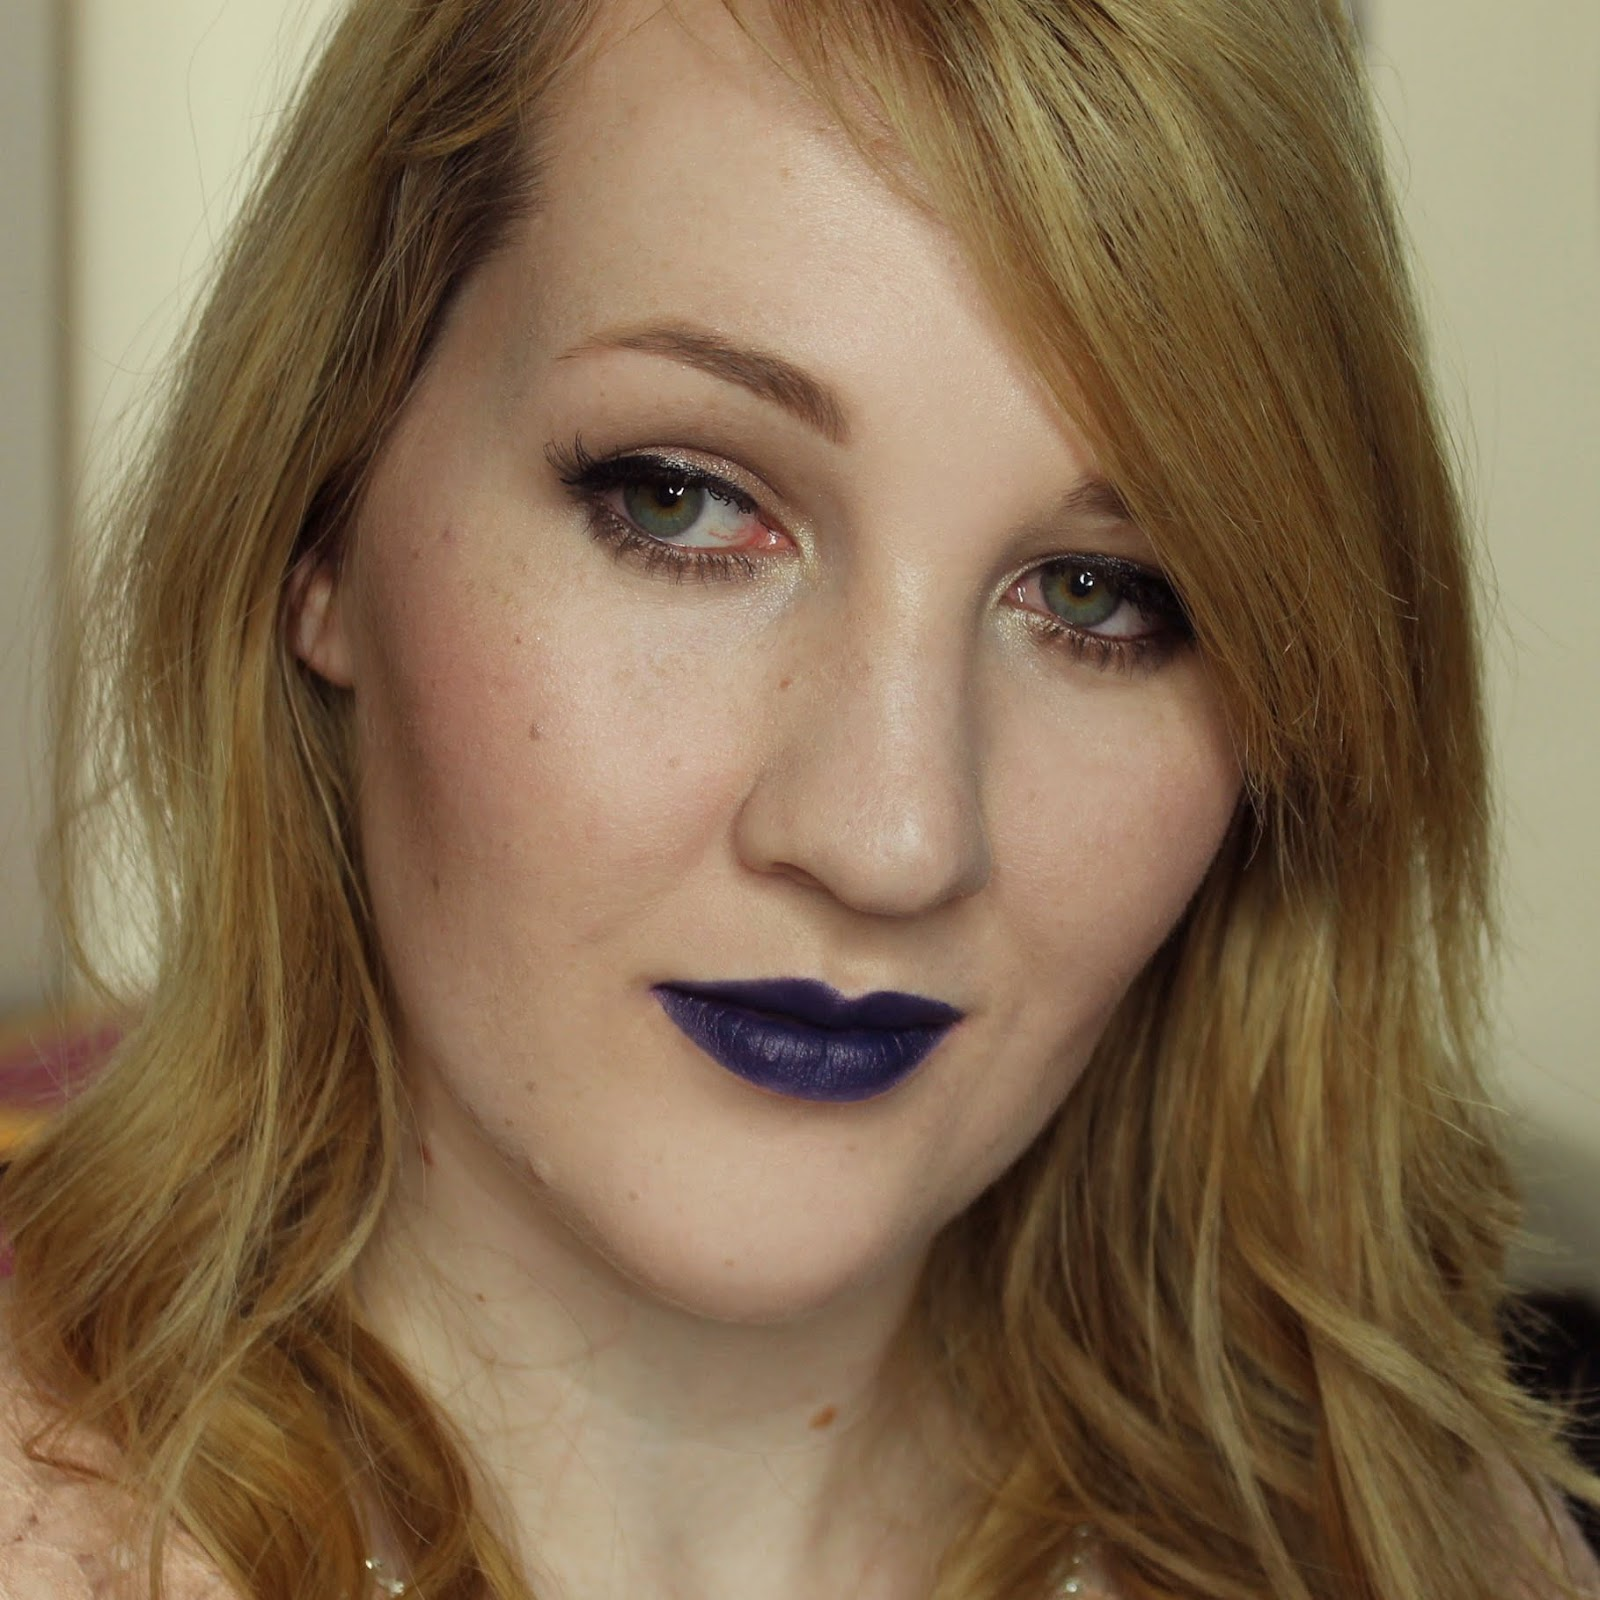 Kat Von D Studded Kiss Lipstick - Poe Swatches & Review